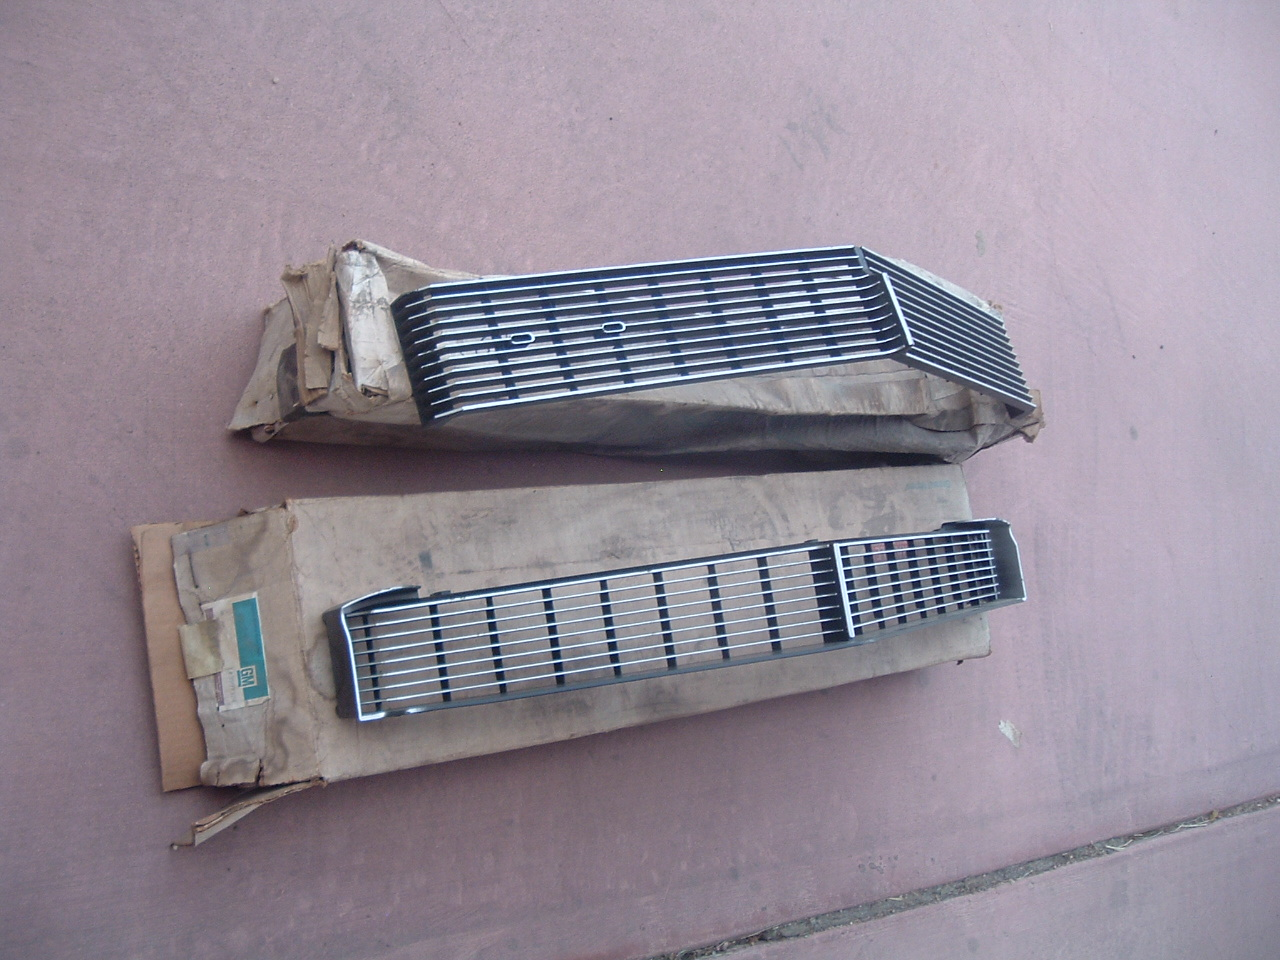 View Product1972 chevrolet impala upper & lower grille nos gm # 3997323 3997324 (z 3997323/24)